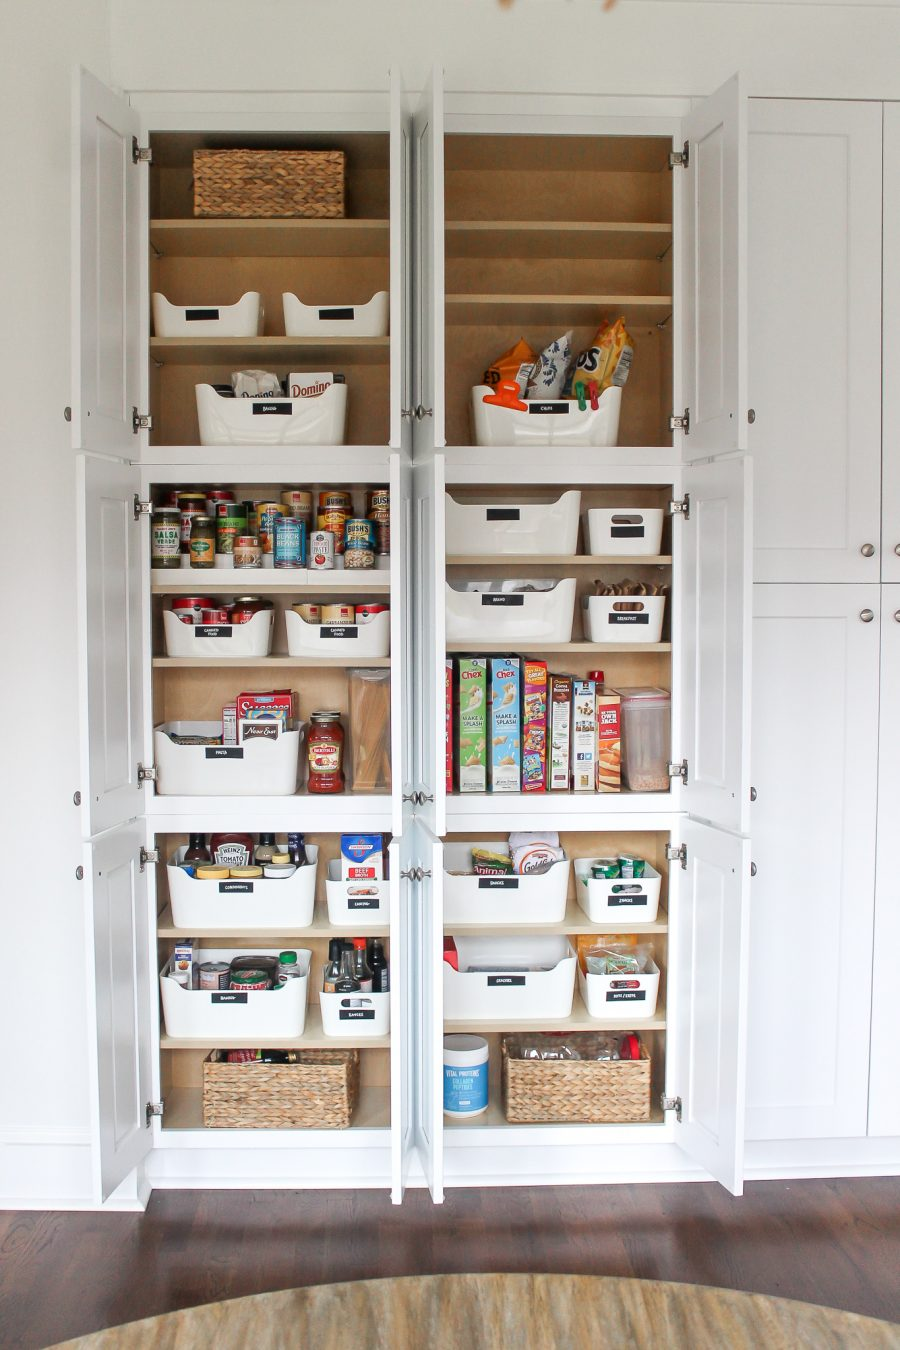 North Carolina lifestyle blogger, Christina shares a look inside her kitchen reno! Check out the kitchen cabinetry & kitchen organization tips!